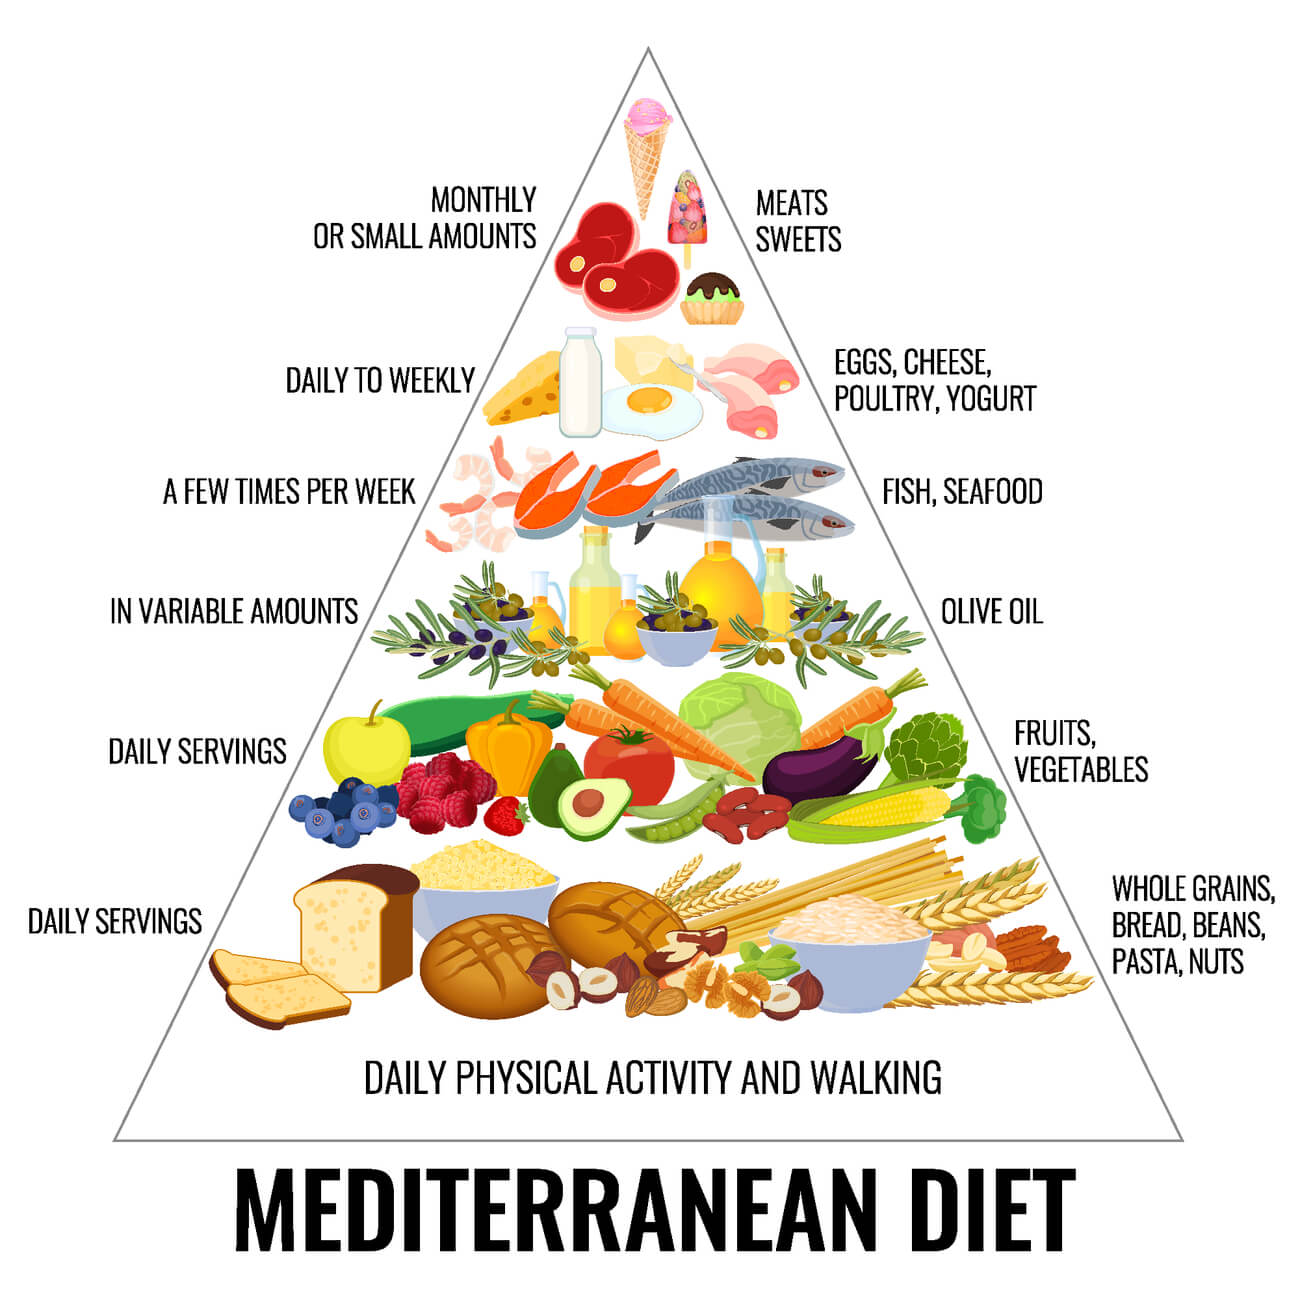 A graphic of the Mediterranean Diet Food Pyramid.